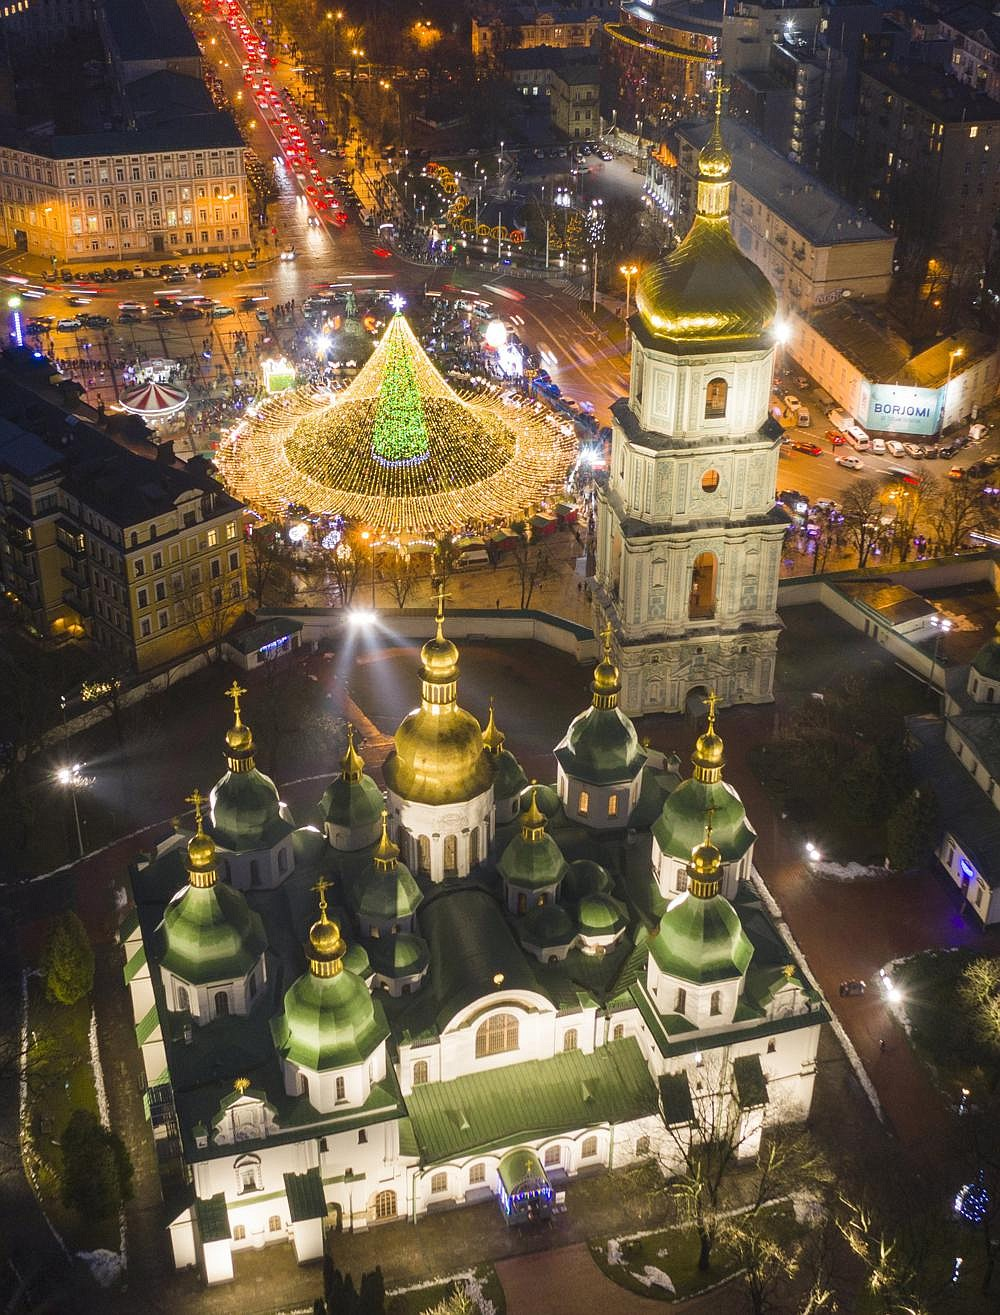 The Christmas tree encased in lights shines Friday behind the St. Sofia Cathedral in Kyiv, Ukraine. (AP/Efrem Lukatsky)